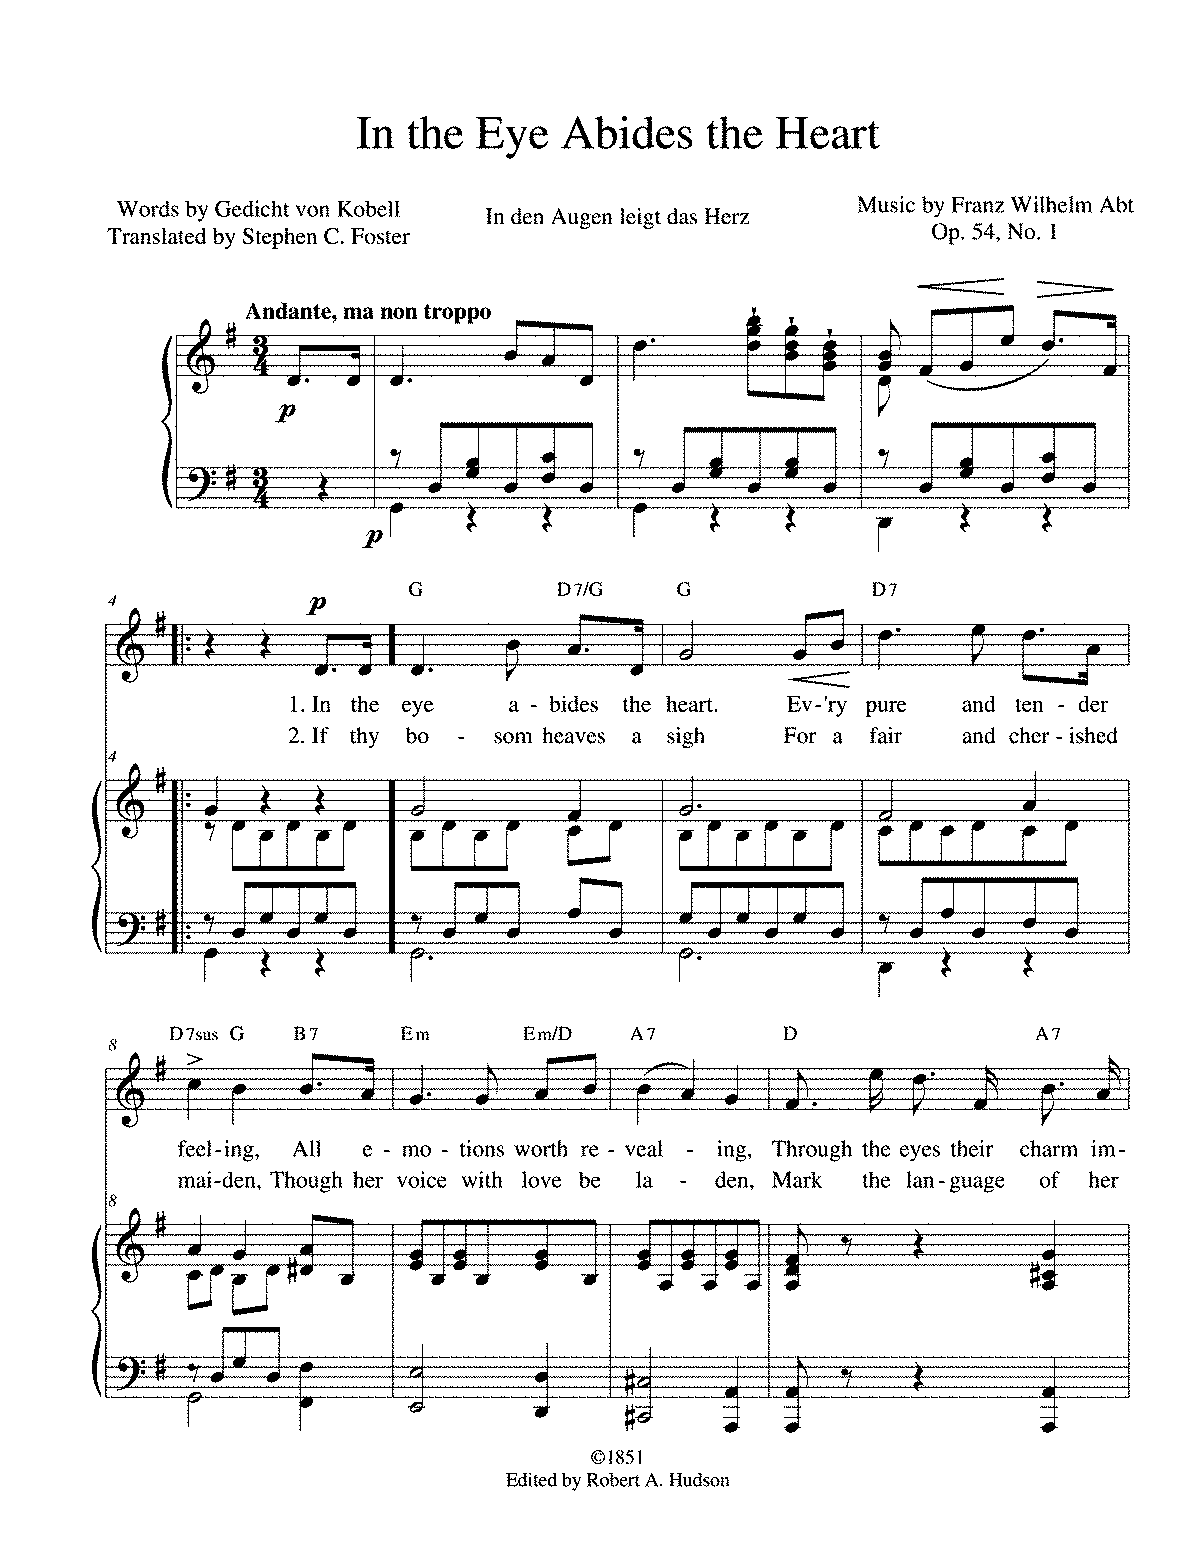 PMLP287145-In the Eye Abides the Heart Original Score.pdf